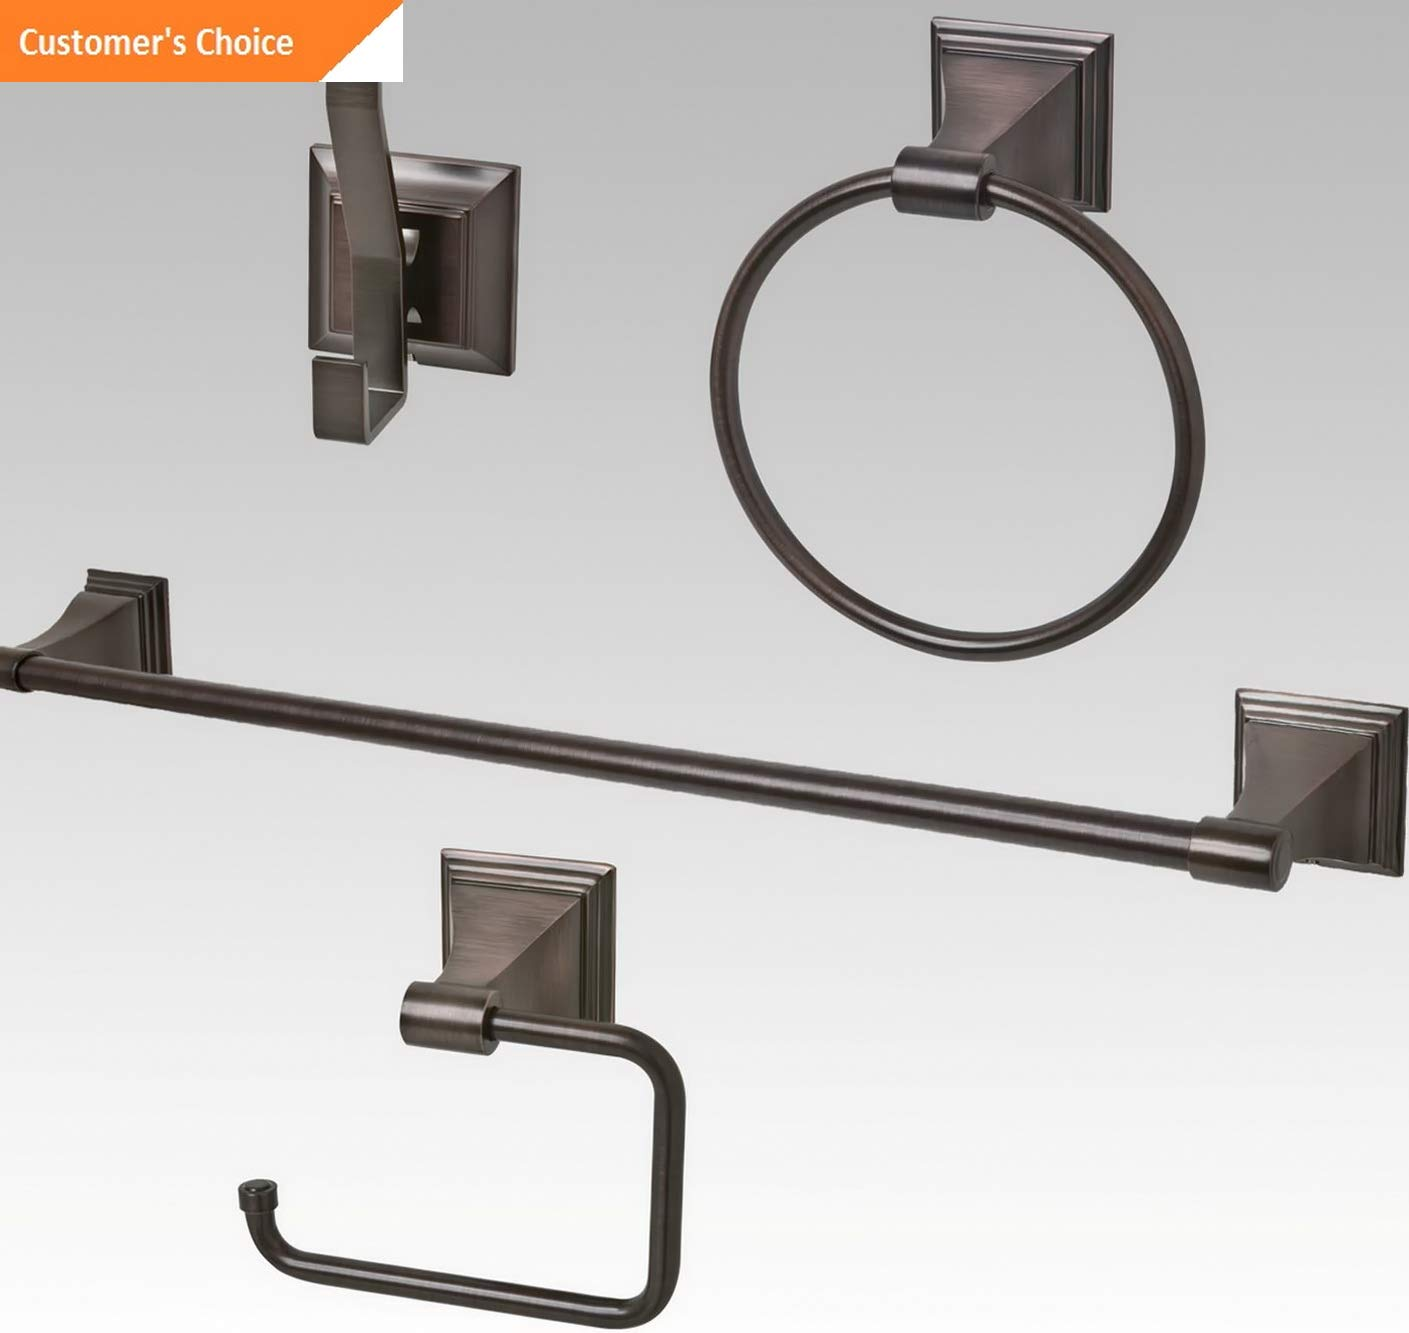 Venetian Bronze Bathroom Accessories Amazon.com: Werrox Oil Rubbed Bronze Bathroom Hardware Accessory Set |  Model BTHRMCCSSR - 227 |: Home u0026 Kitchen